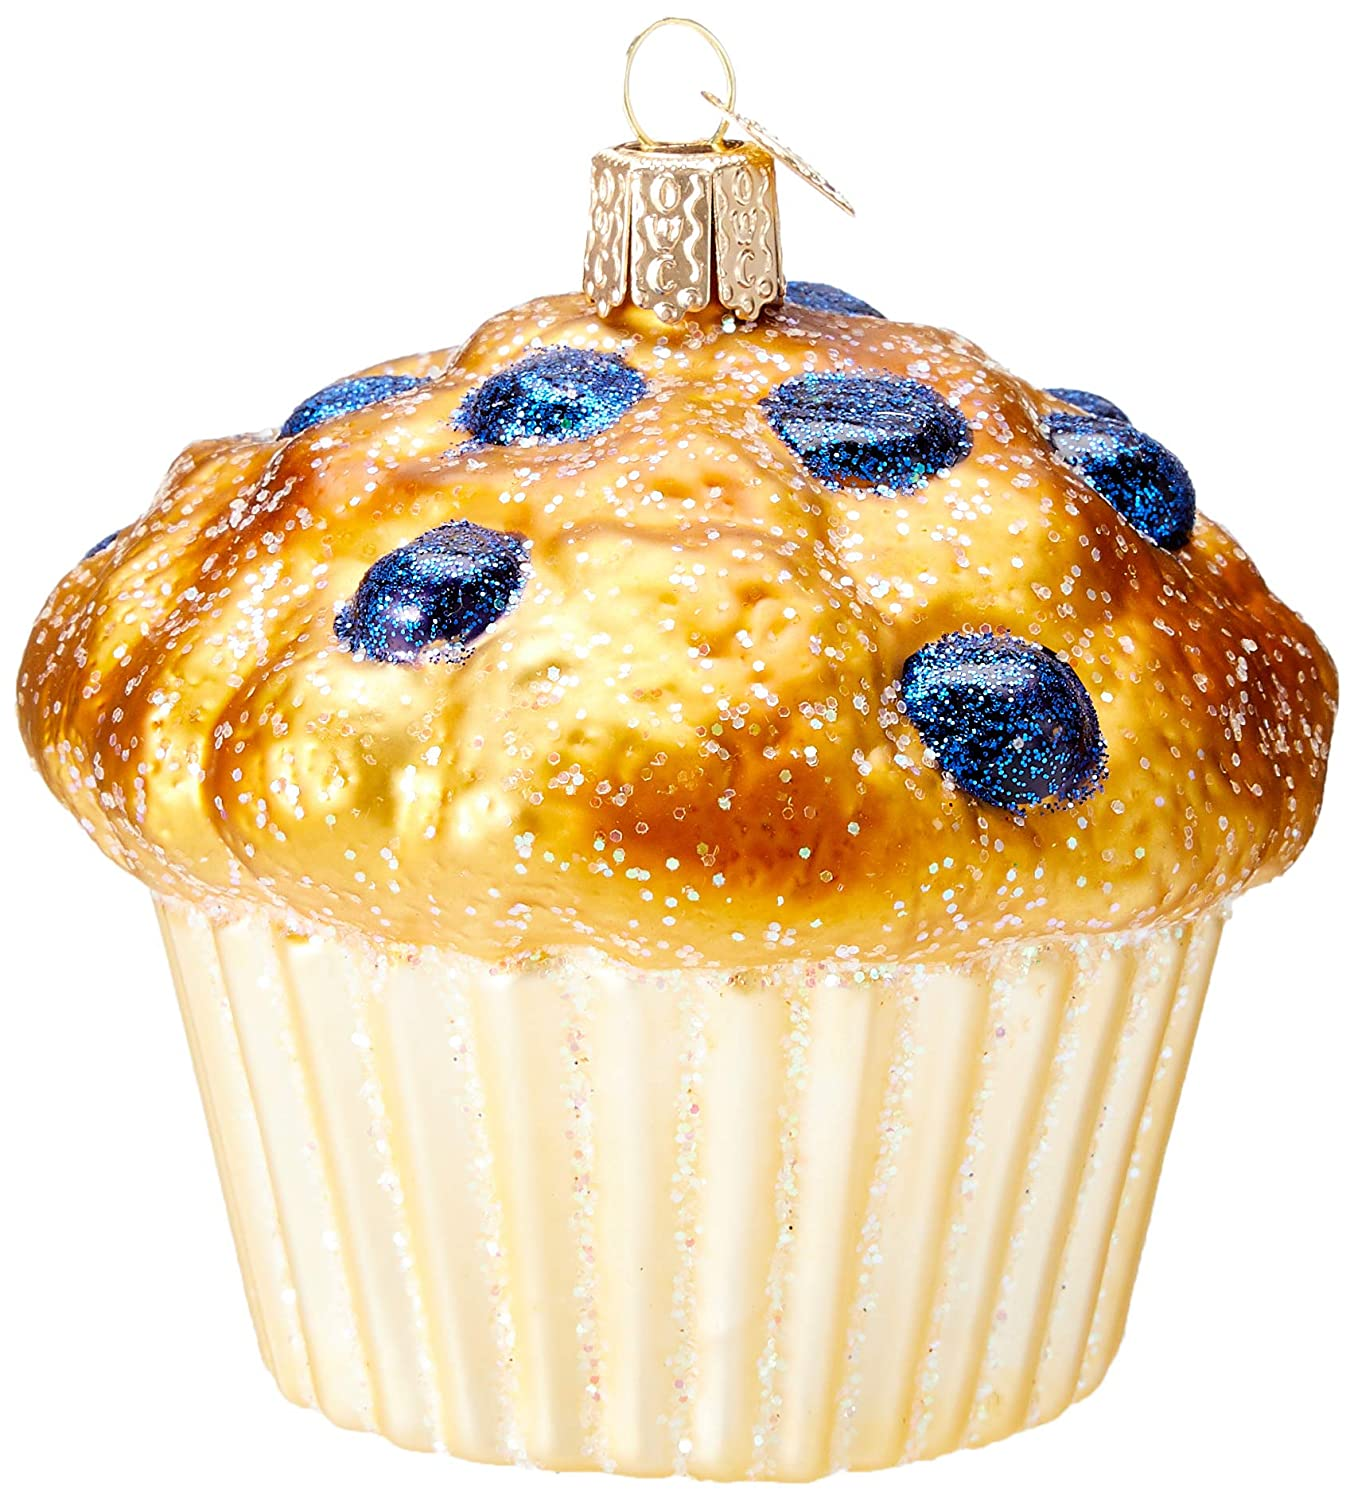 Christmas Tree Muffins: Old World Christmas Glass Blown Ornament Blueberry Muffin